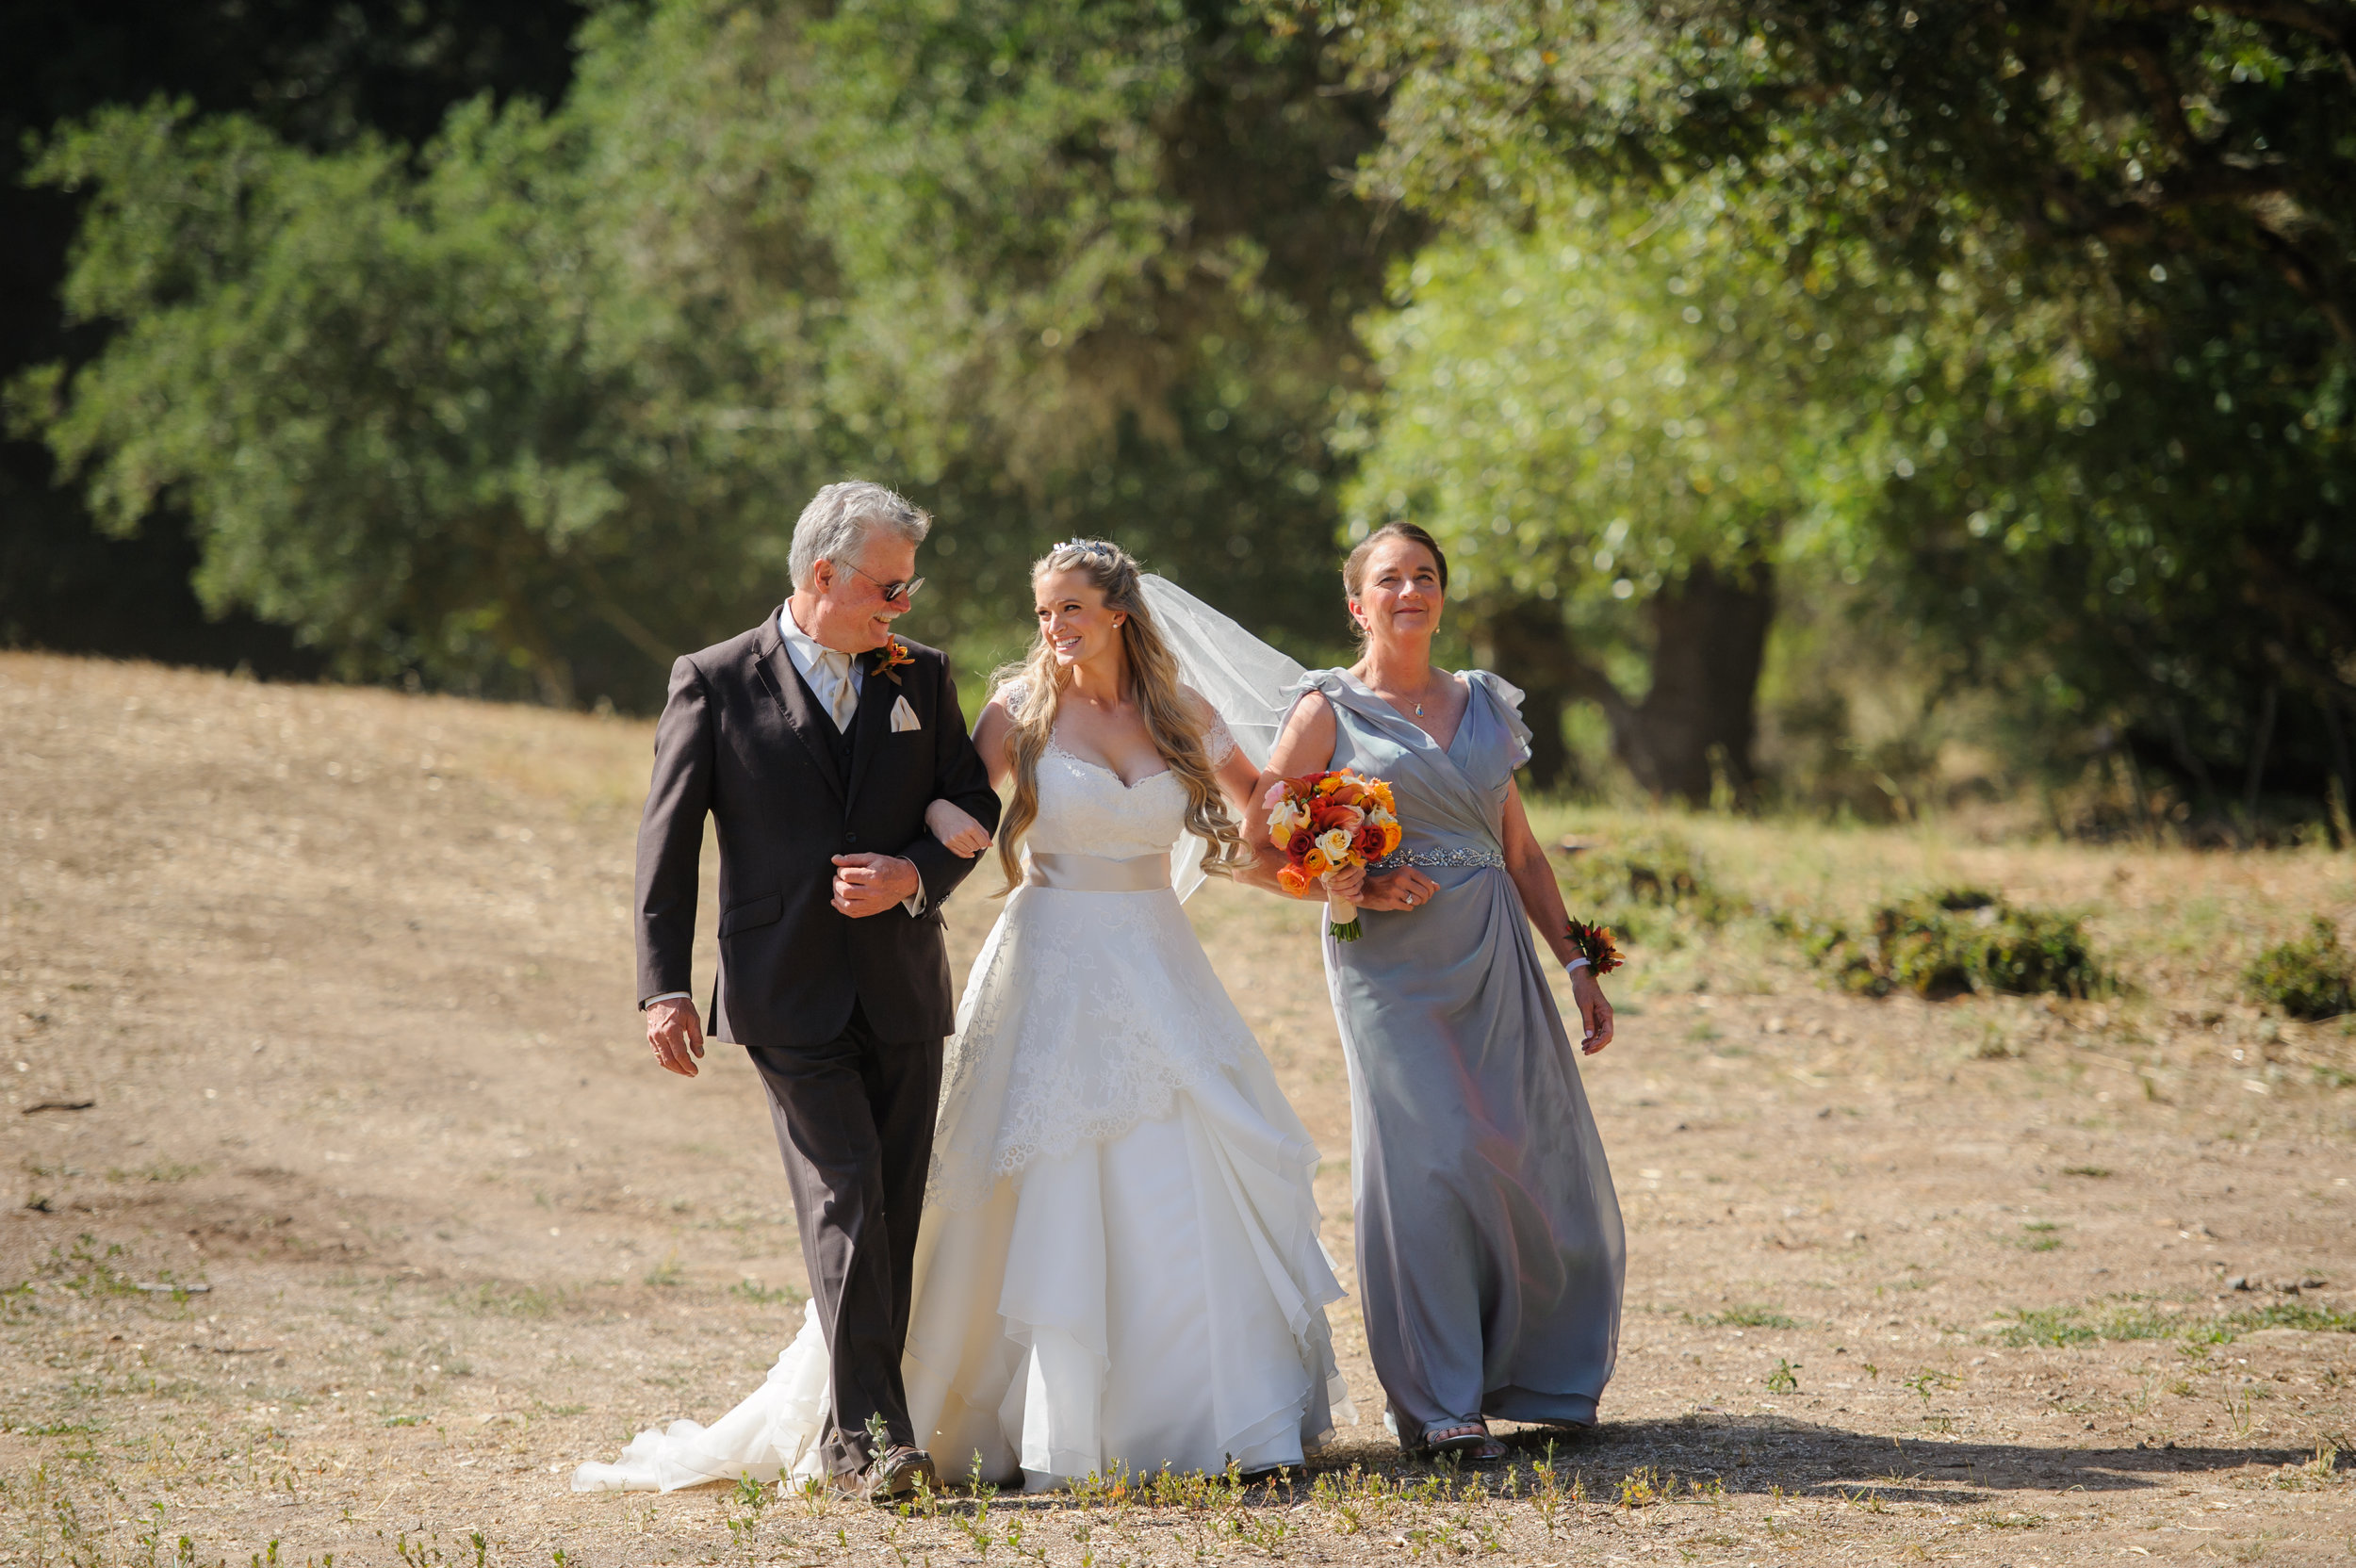 mara-chris-020-backyard-sonoma-wedding-photographer-katherine-nicole-photography.JPG